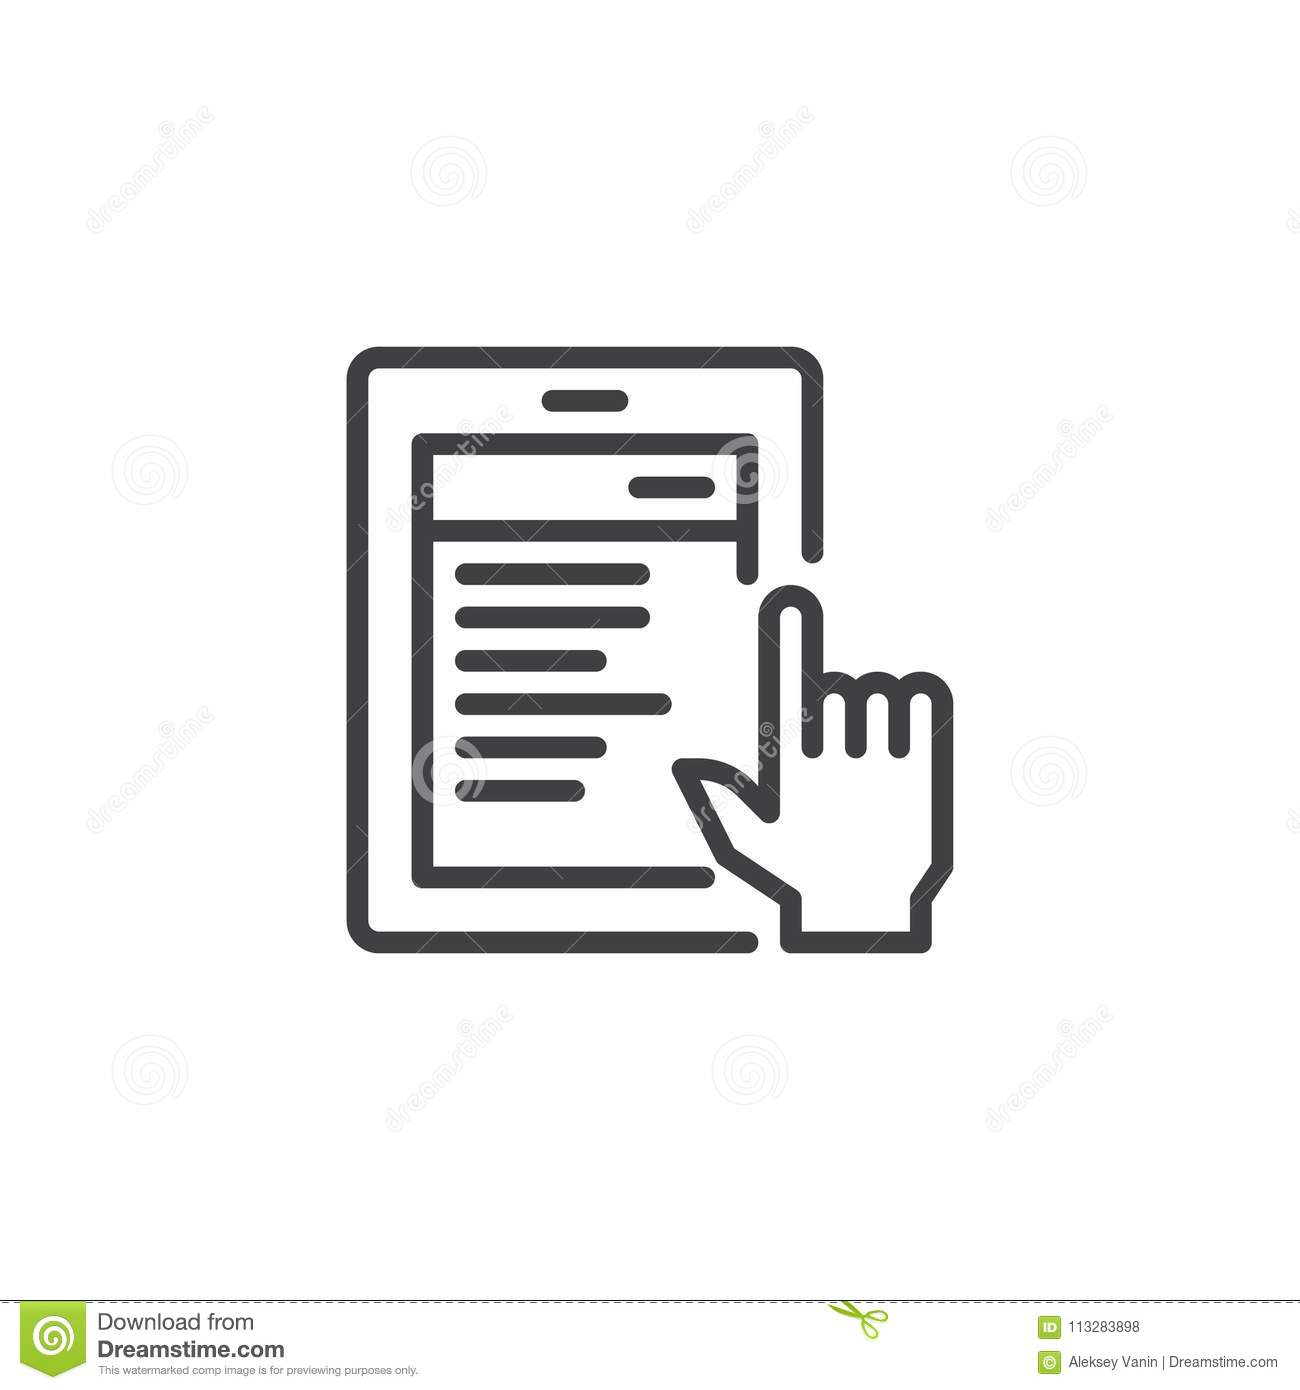 reading news on tablet outline icon stock vector - illustration of